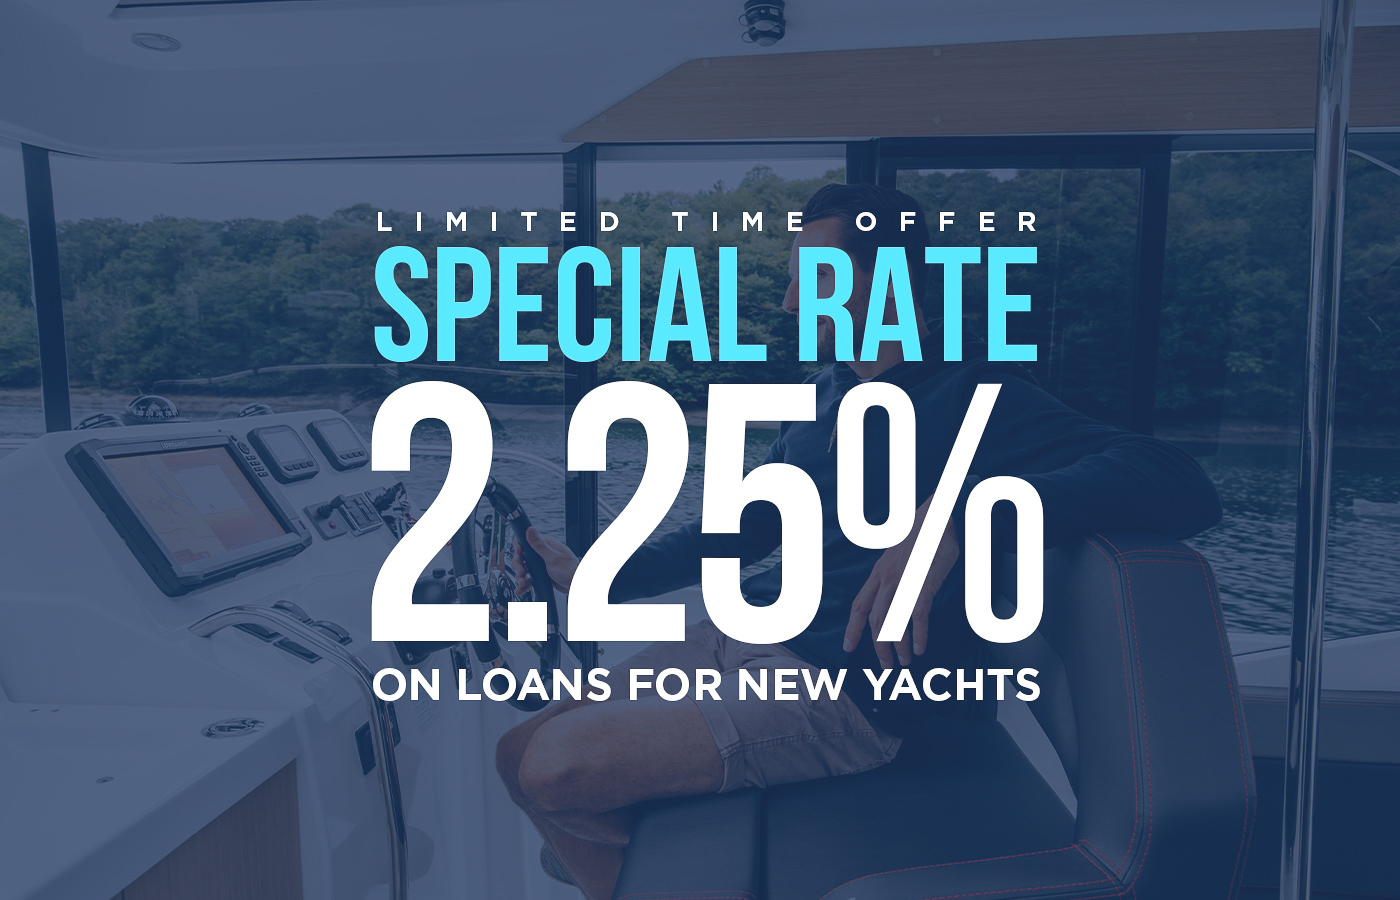 Record Low Interest Rate For Boat Loans [New Yachts]